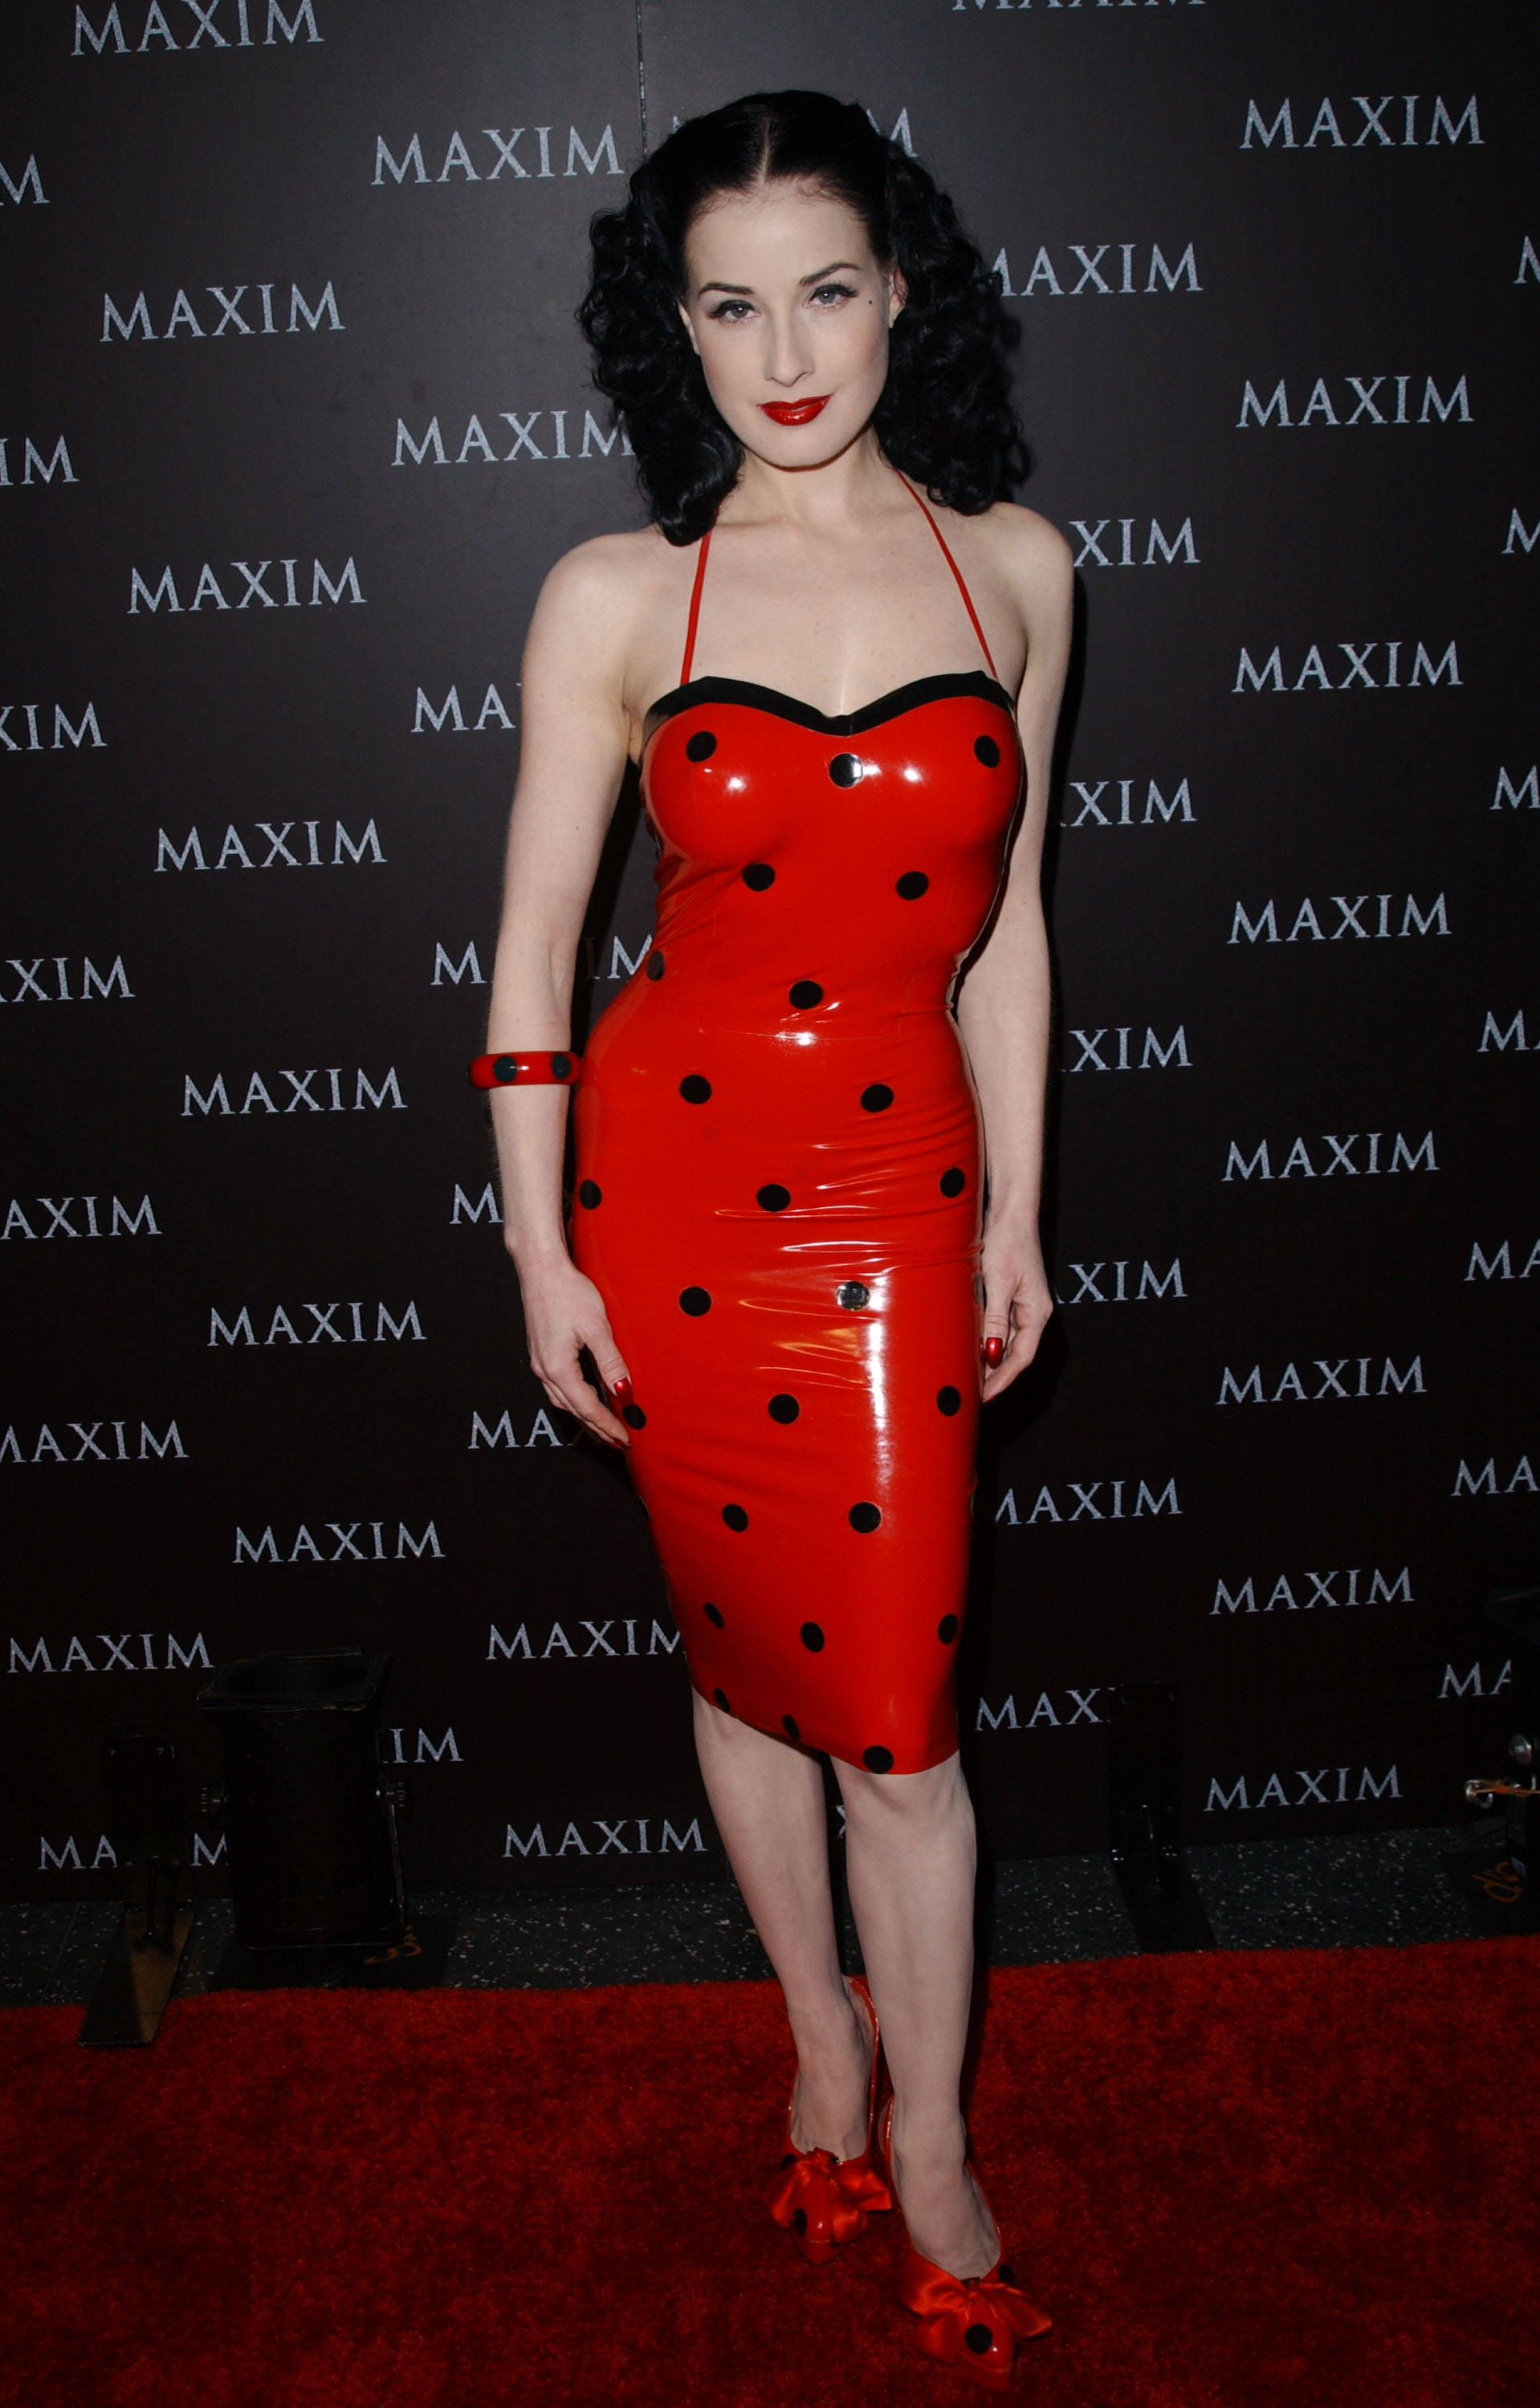 Dita Von Teese. Red latex - For the love of latex | Pinterest